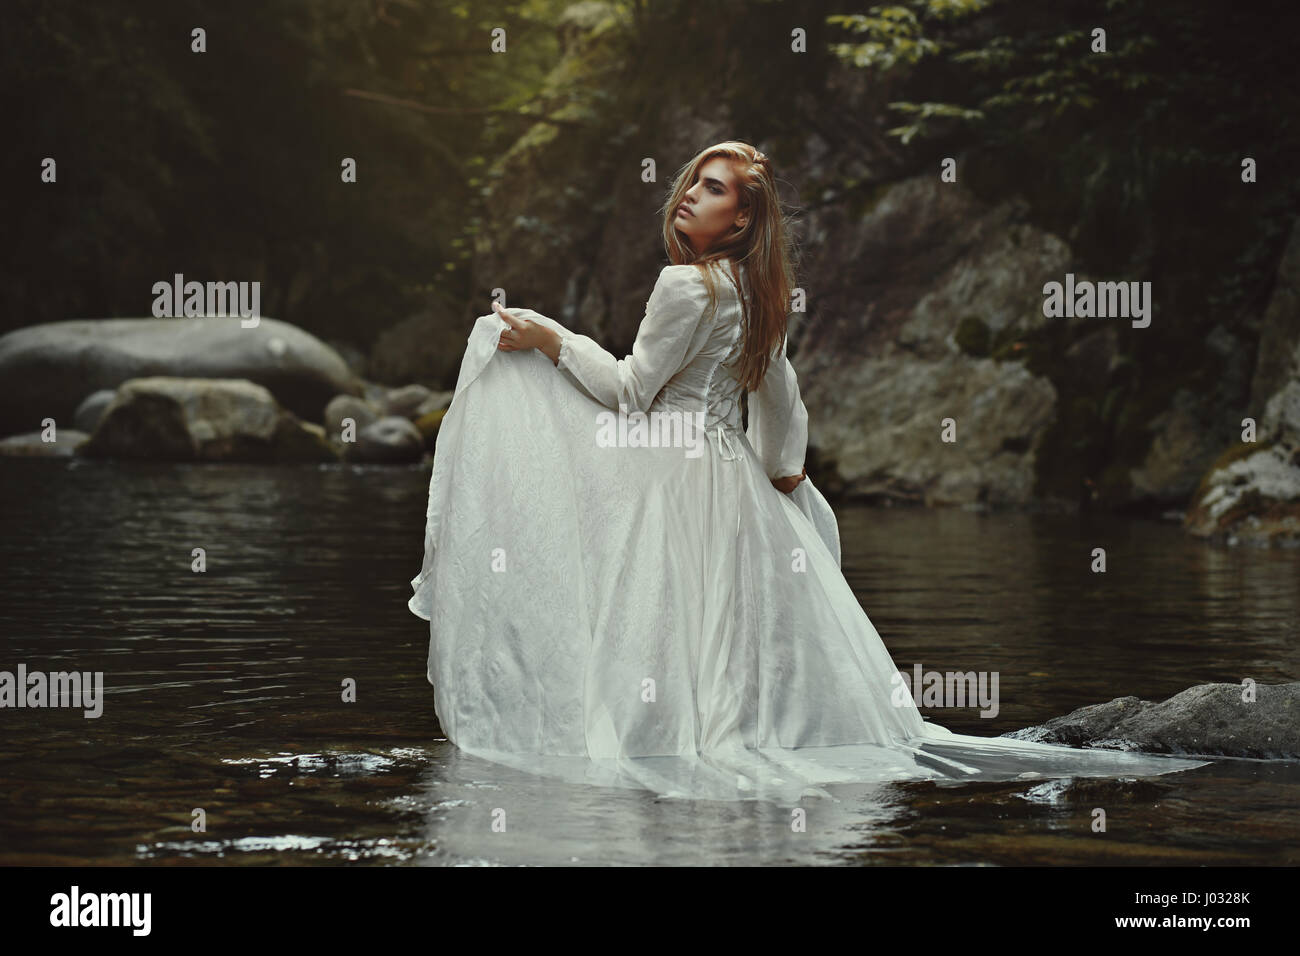 Beautiful ethereal woman in mystical waters. Fantasy pond - Stock Image